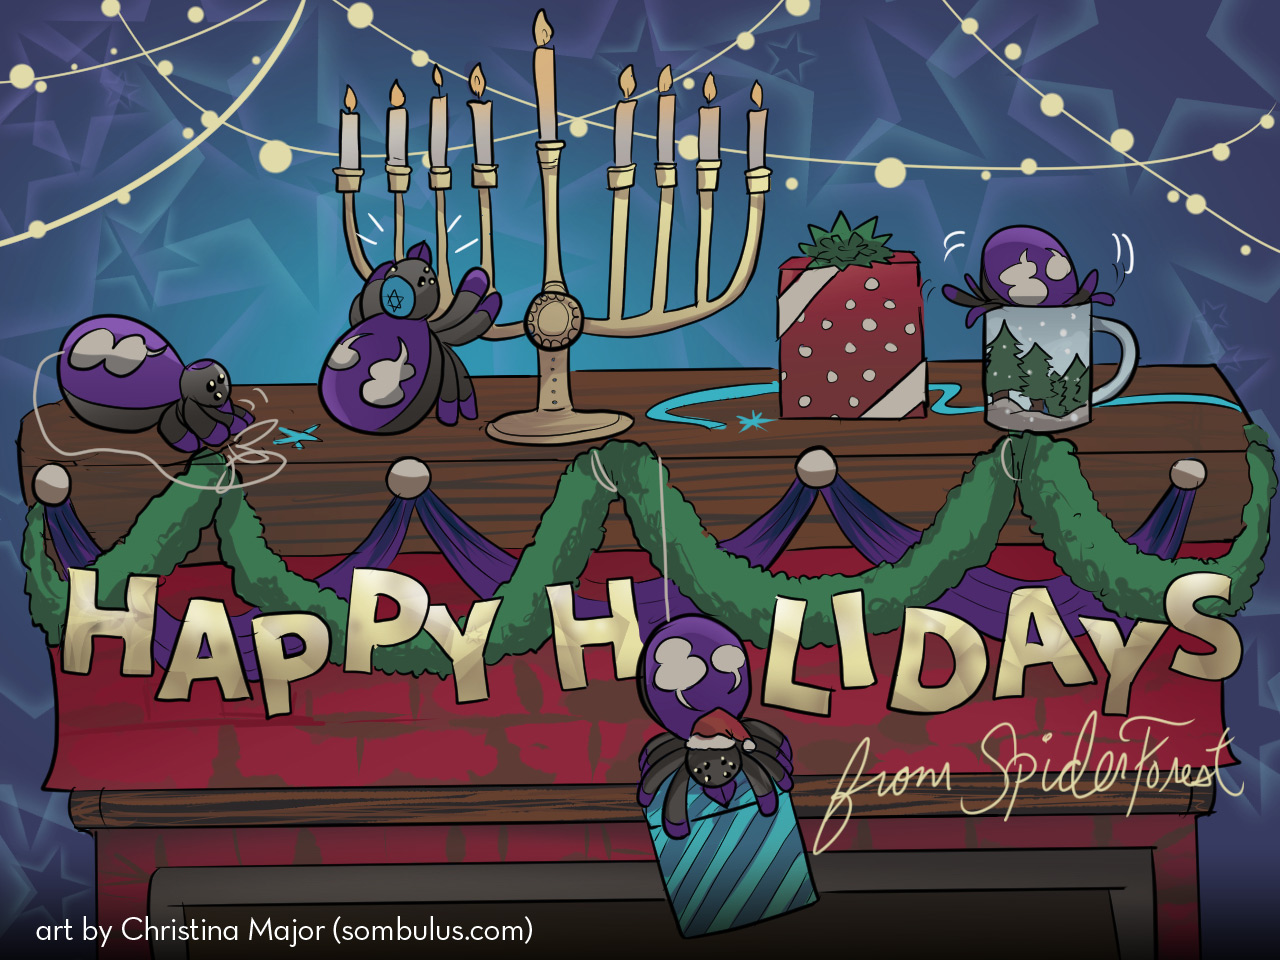 Happy Holidays! SpiderForest News for December!